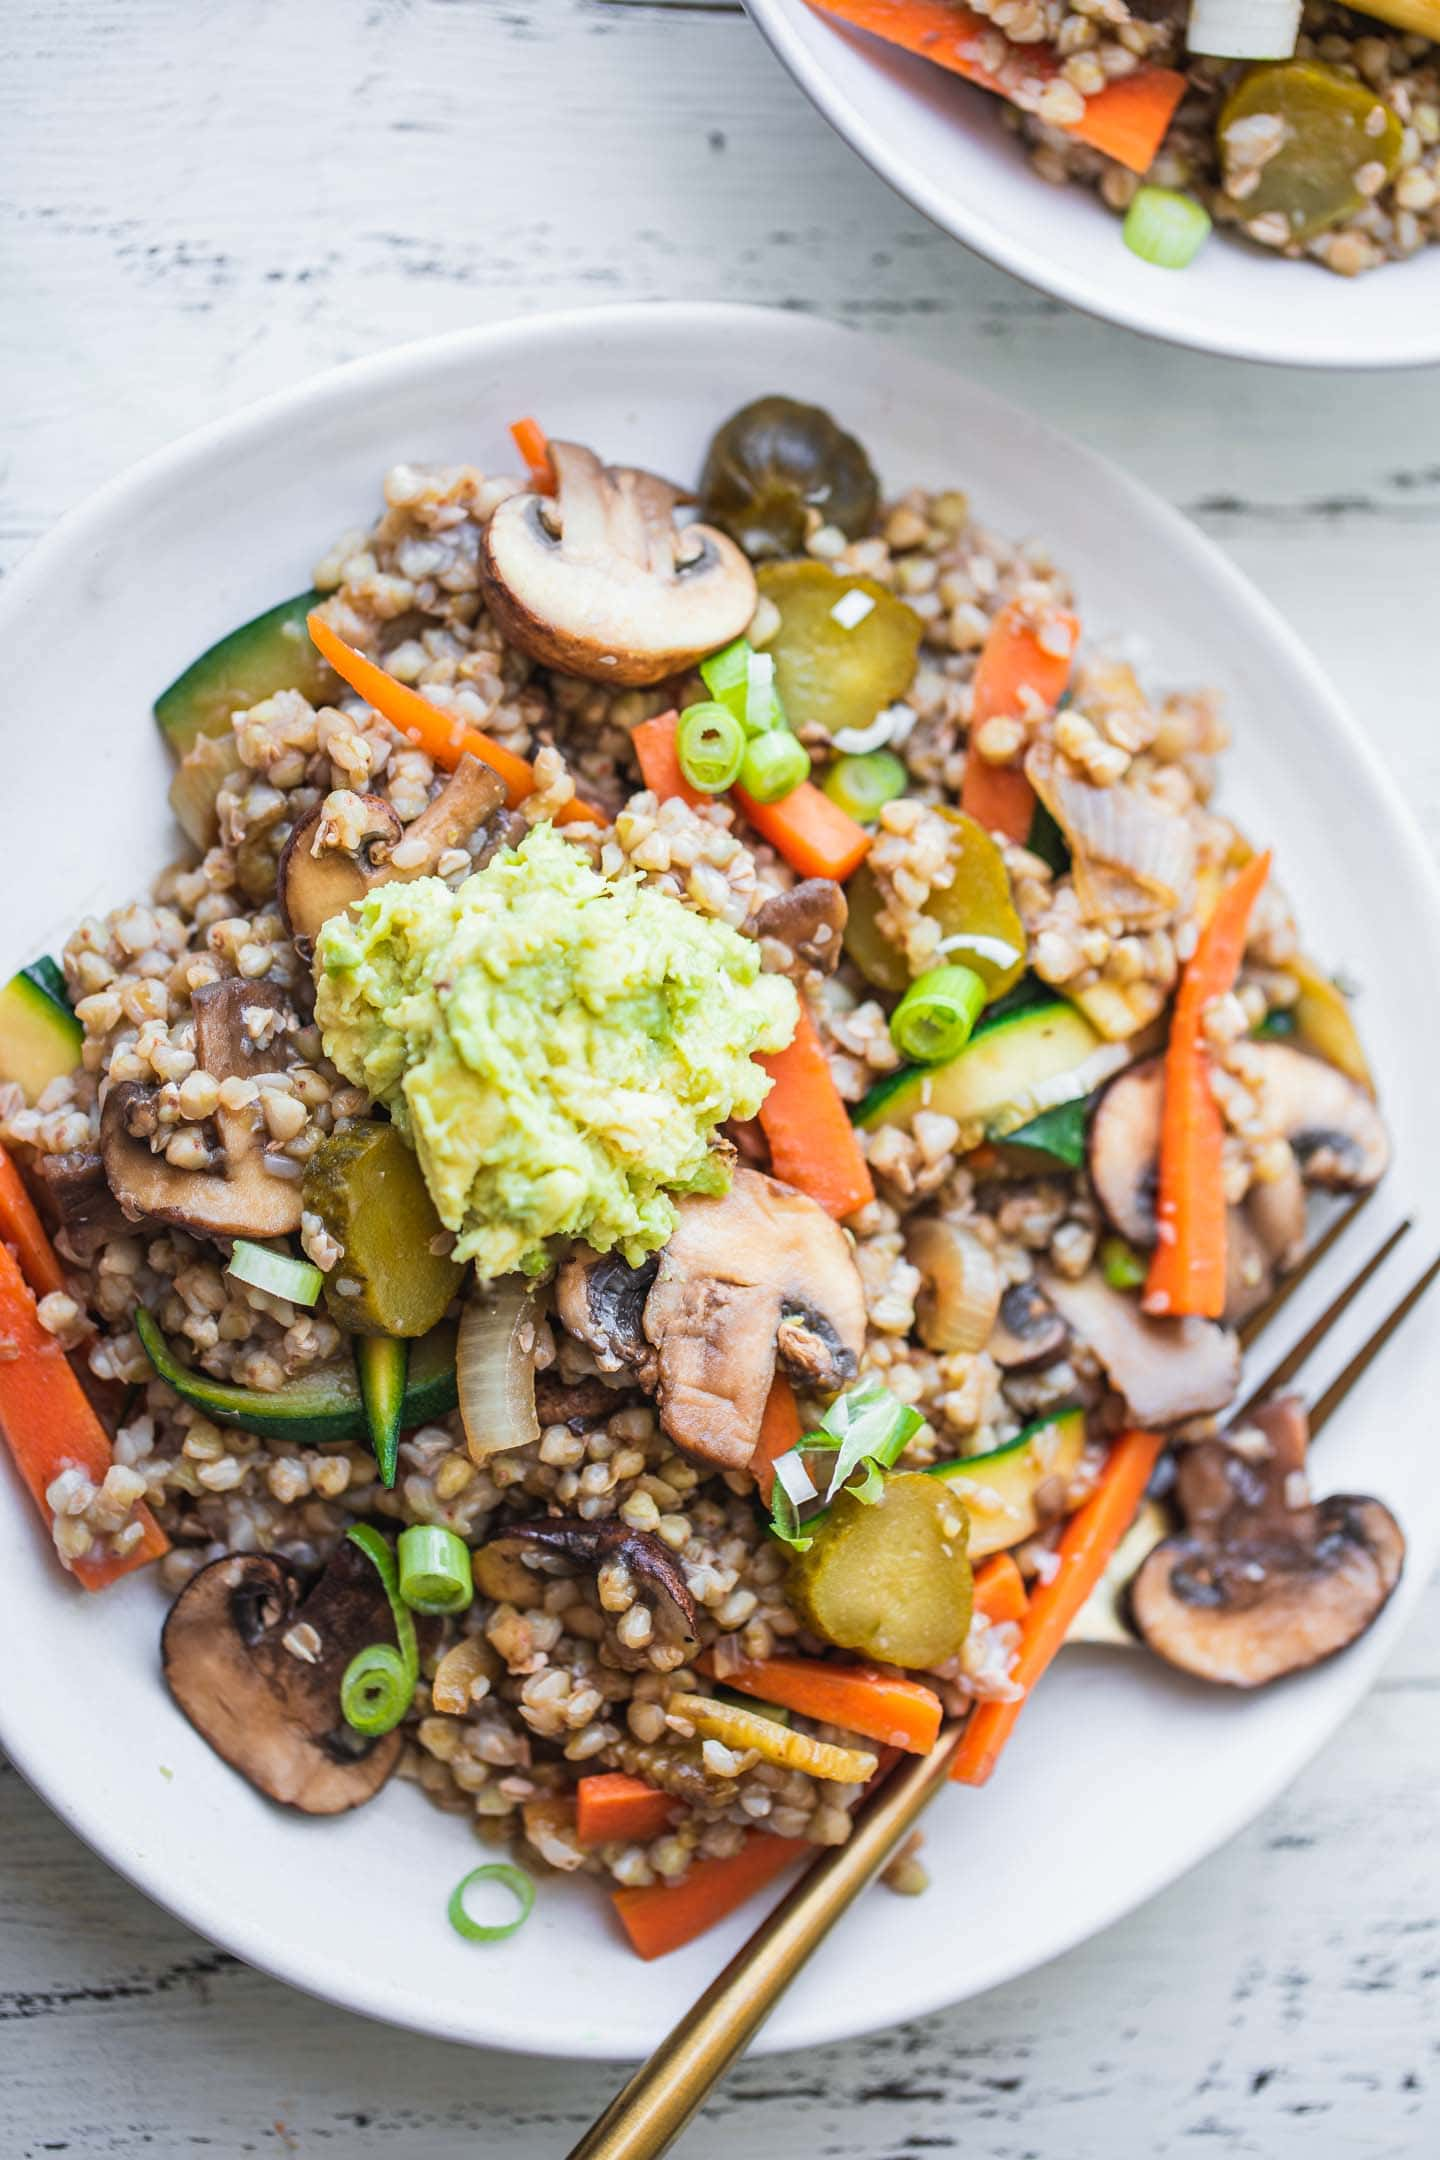 Buckwheat with vegetables and avocado